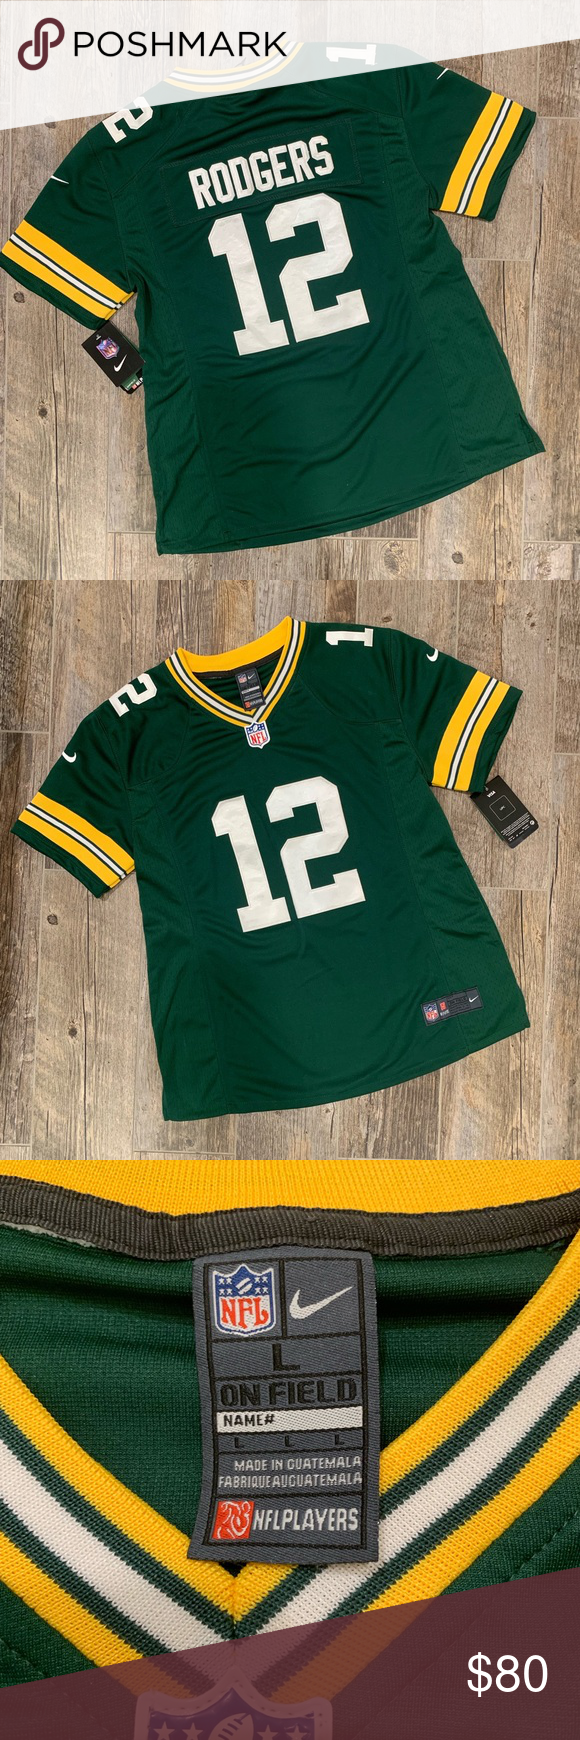 Green Bay Packers Aaron Rodgers Jersey Aaron Rodgers Jersey Green Bay Packers Aaron Rodgers Green Bay Packers